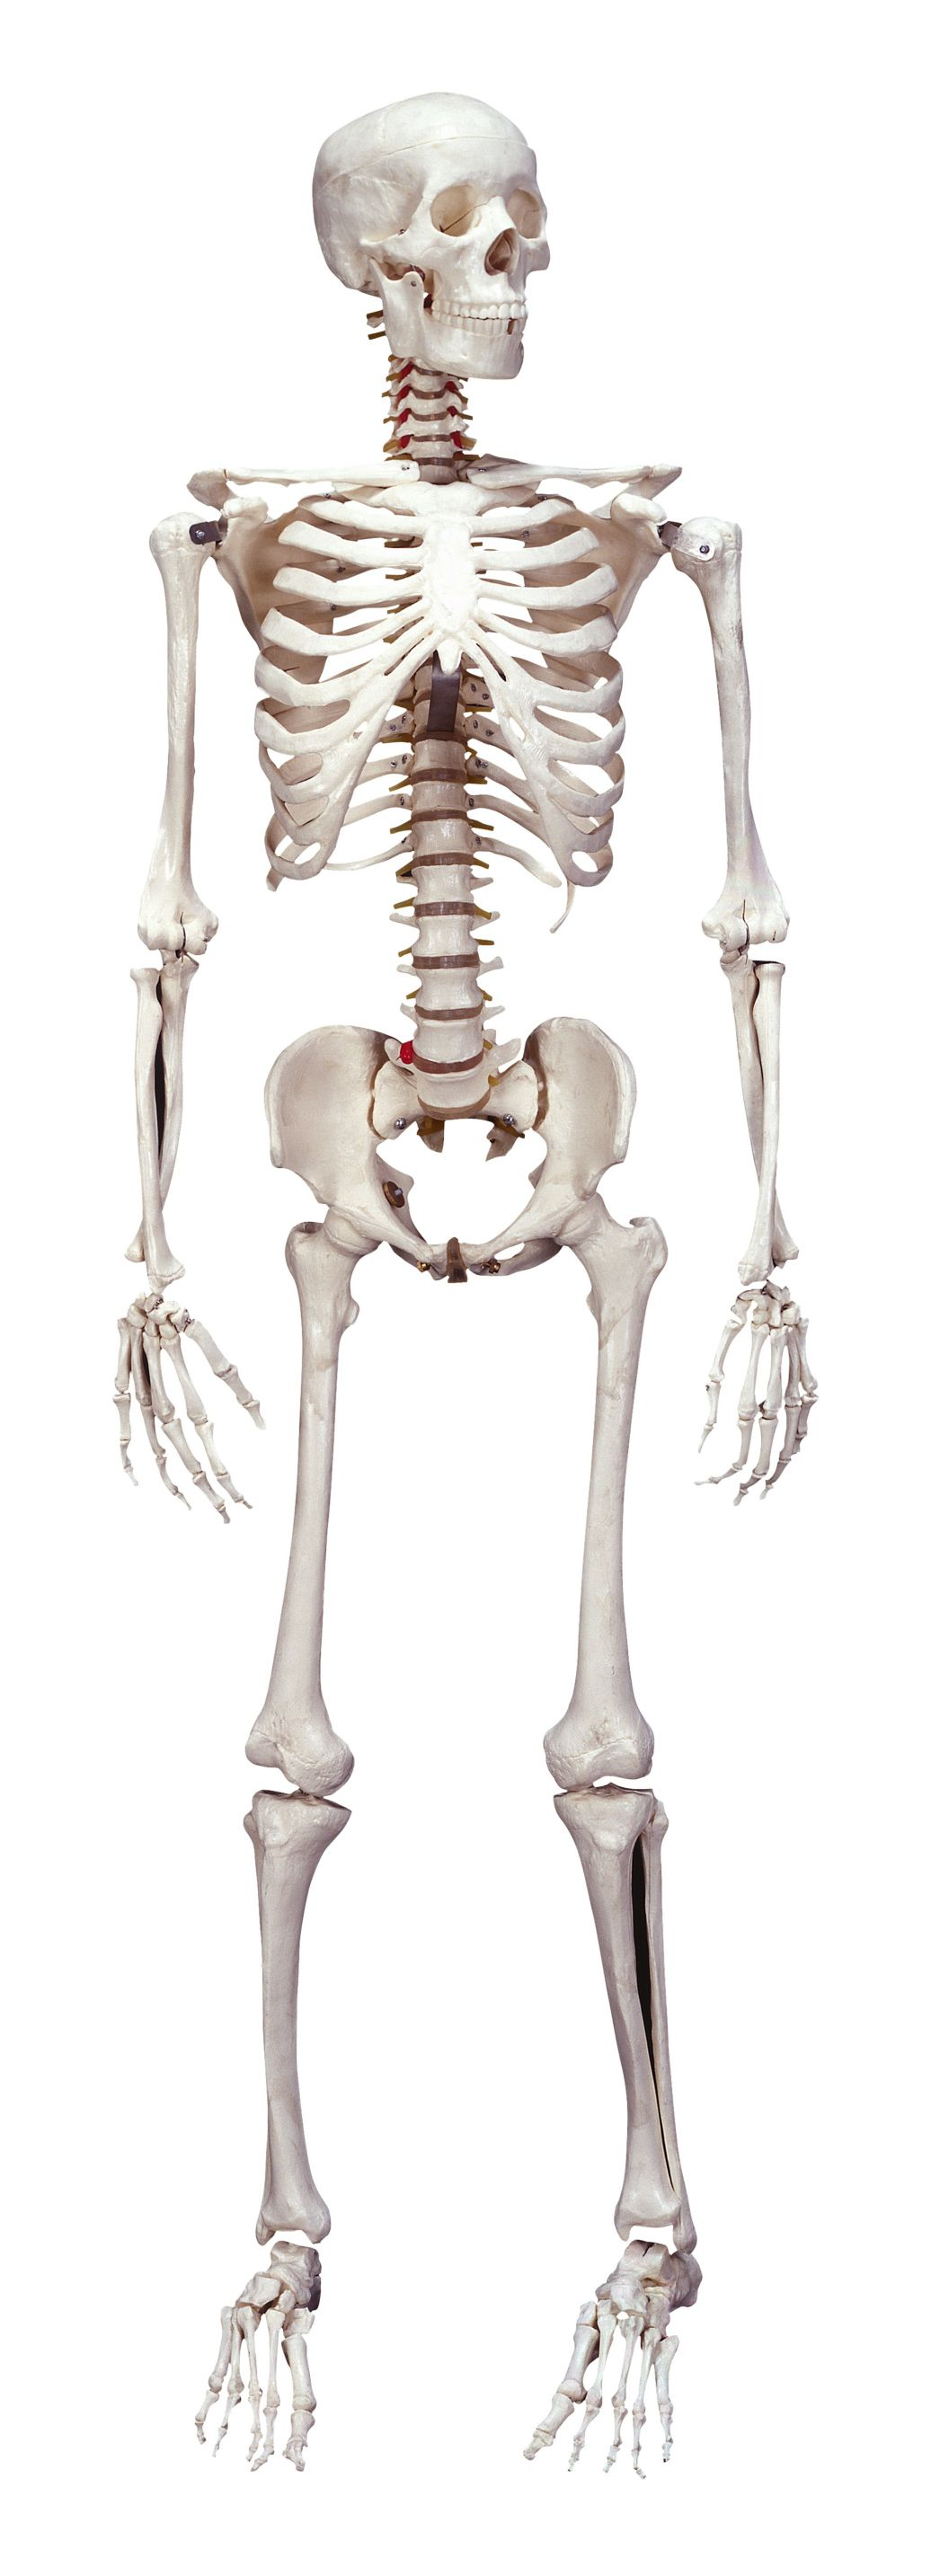 Health Tidbit Humans Have 300 Bones As A Newborn And 206 Bones As A